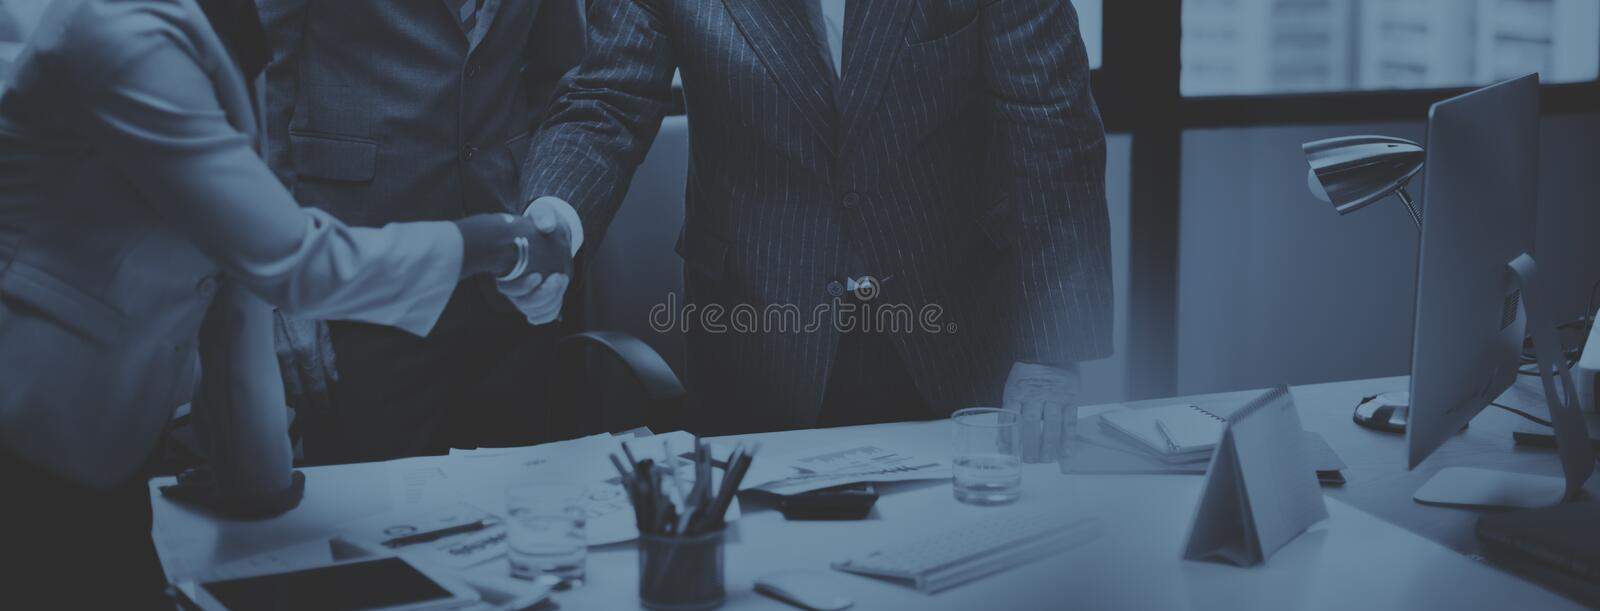 Business People Meeting Corporate Handshake Greeting Concept stock photography